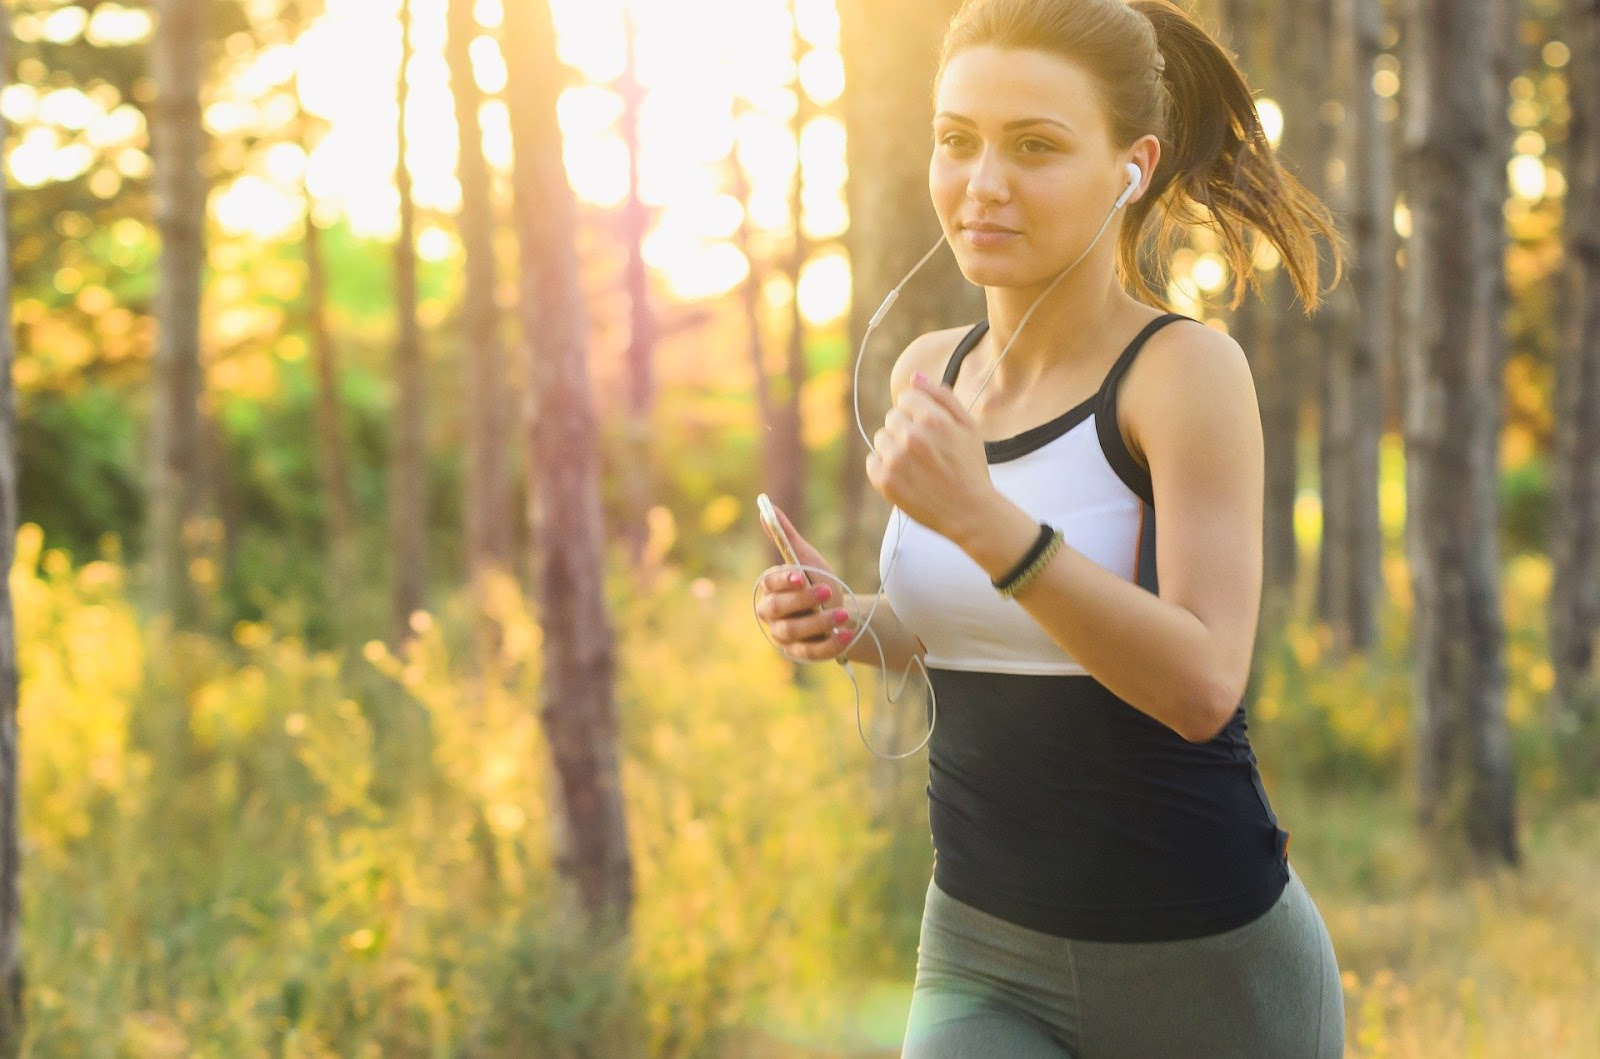 4 Ways That Exercising Can Make You Feel More Positive